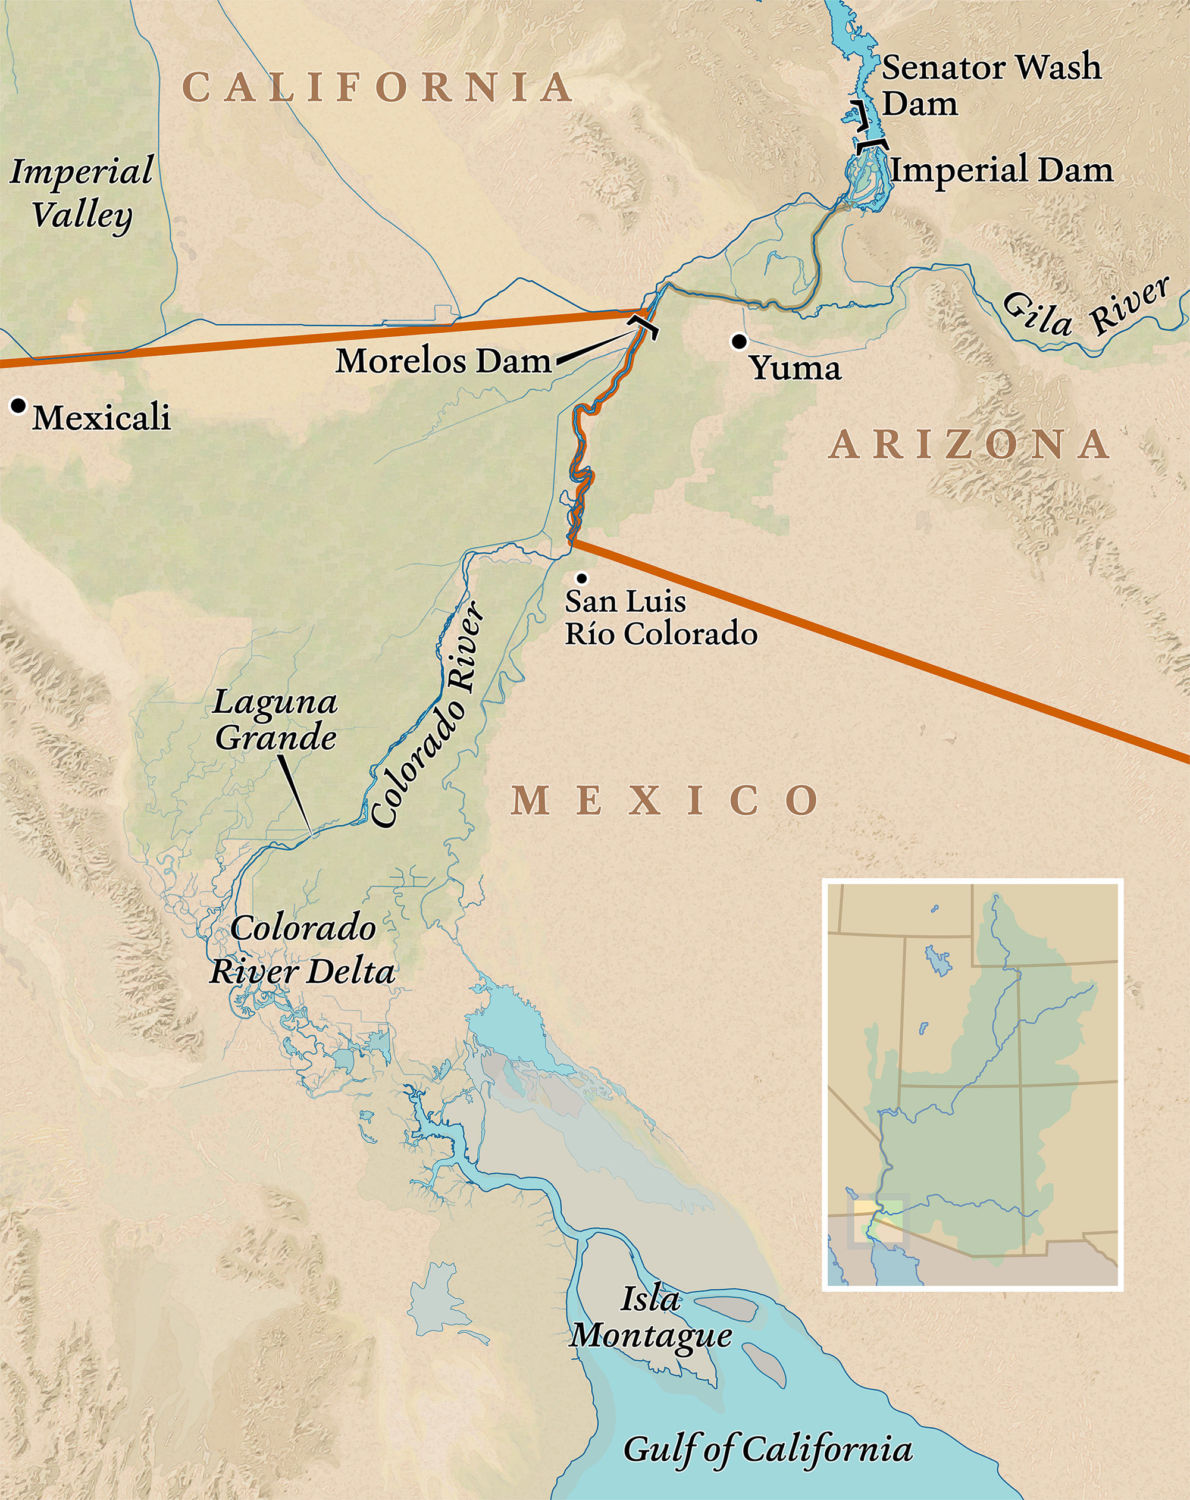 Gulf Of California Map.Restoring The Colorado Bringing New Life To A Stressed River Yale